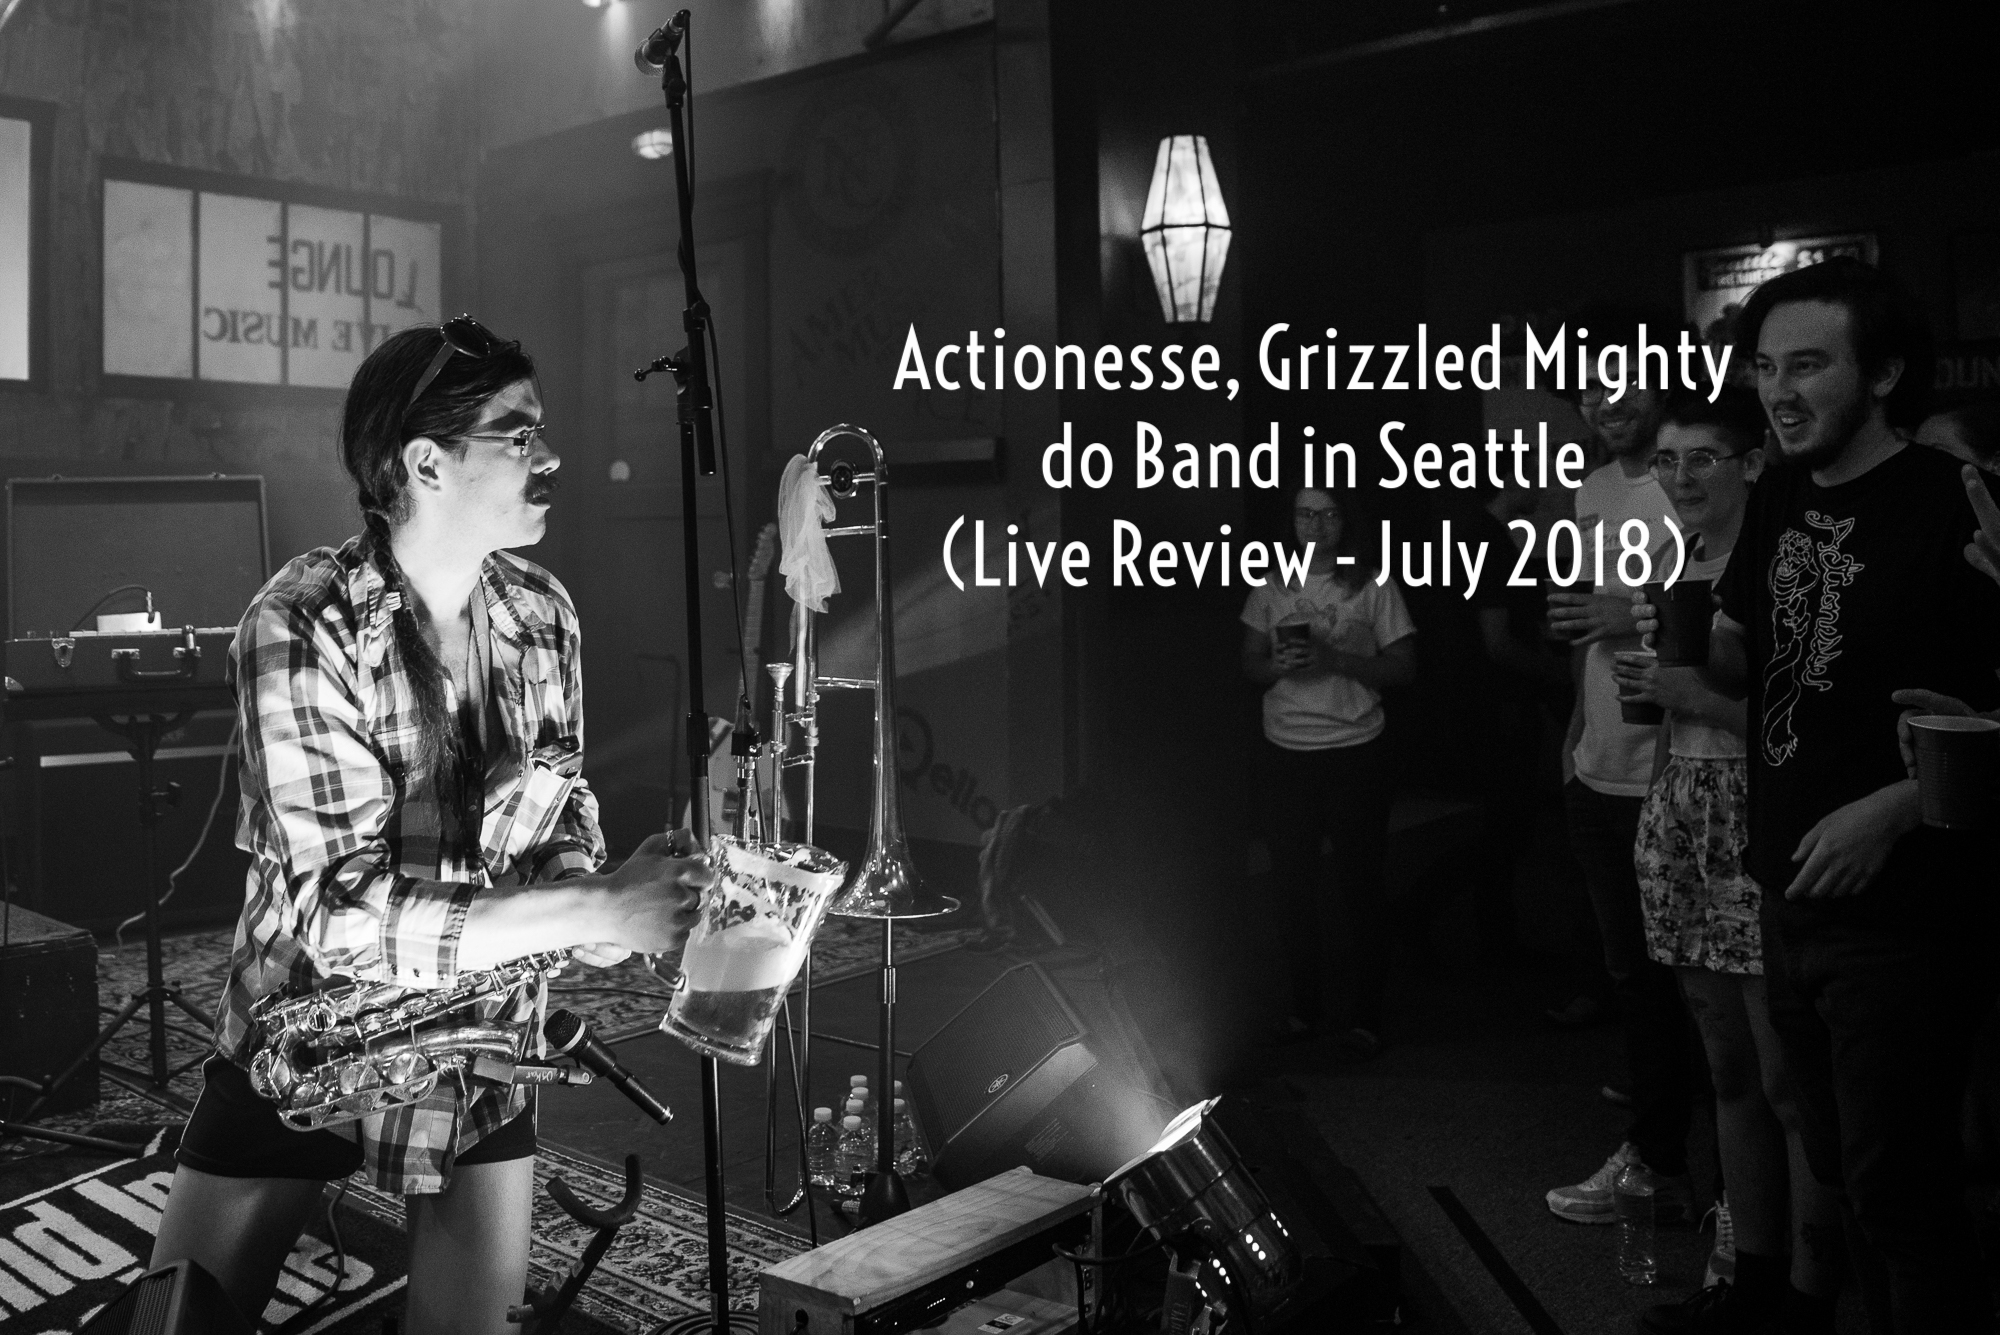 """Actionesse puts on one of the best live shows in Seattle right now, and they don't do it by way of wacky outfits or fancy light shows: they do it by sheer force of intensity in both their music and their deportment."" - Seattle Music Insider"